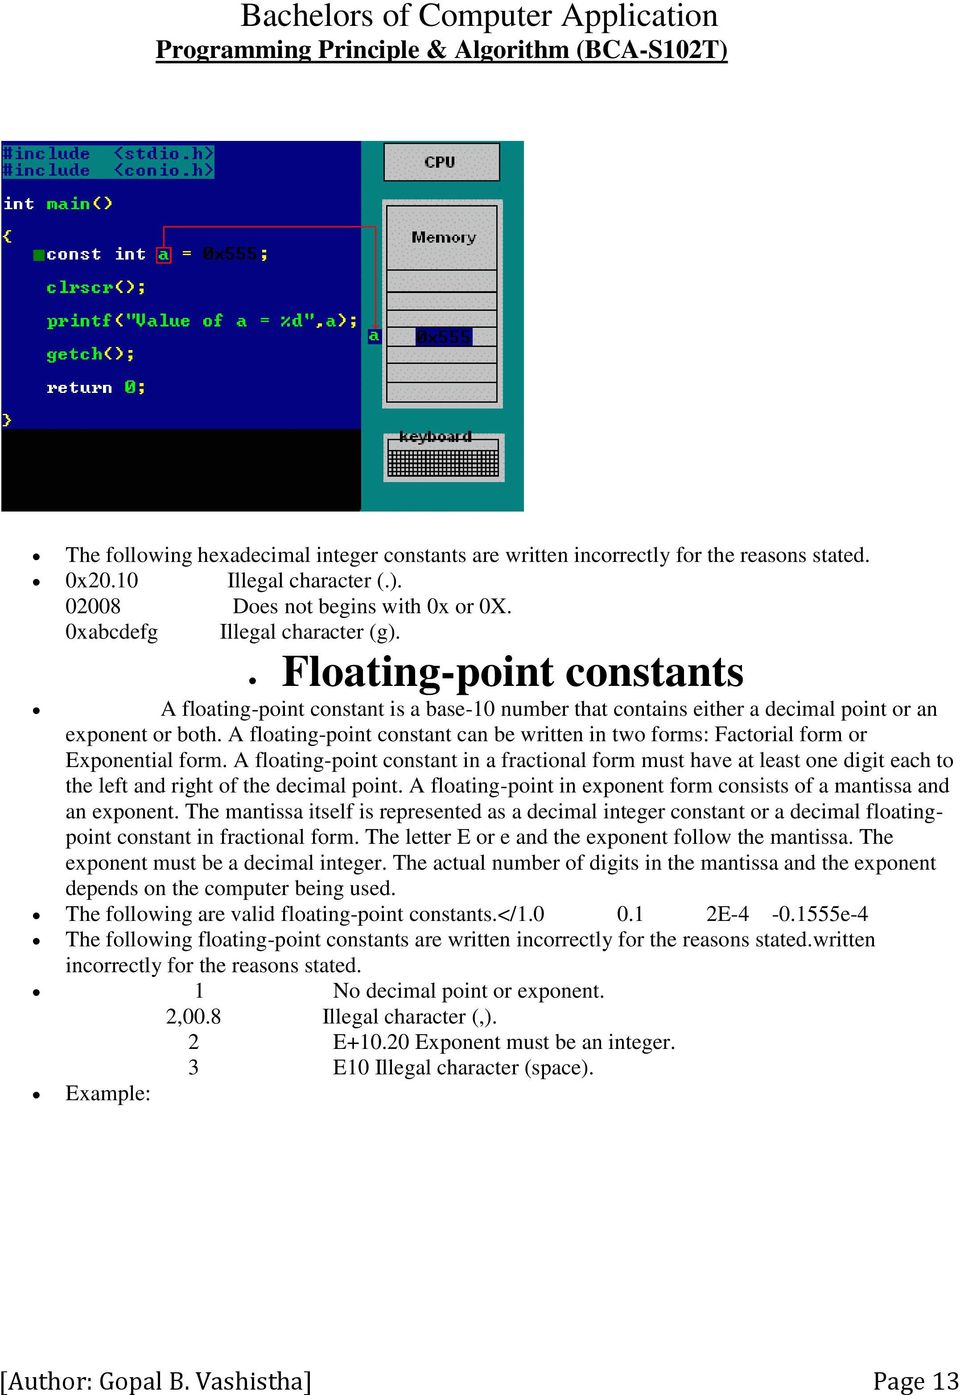 A floating-point constant can be written in two forms: Factorial form or Exponential form.